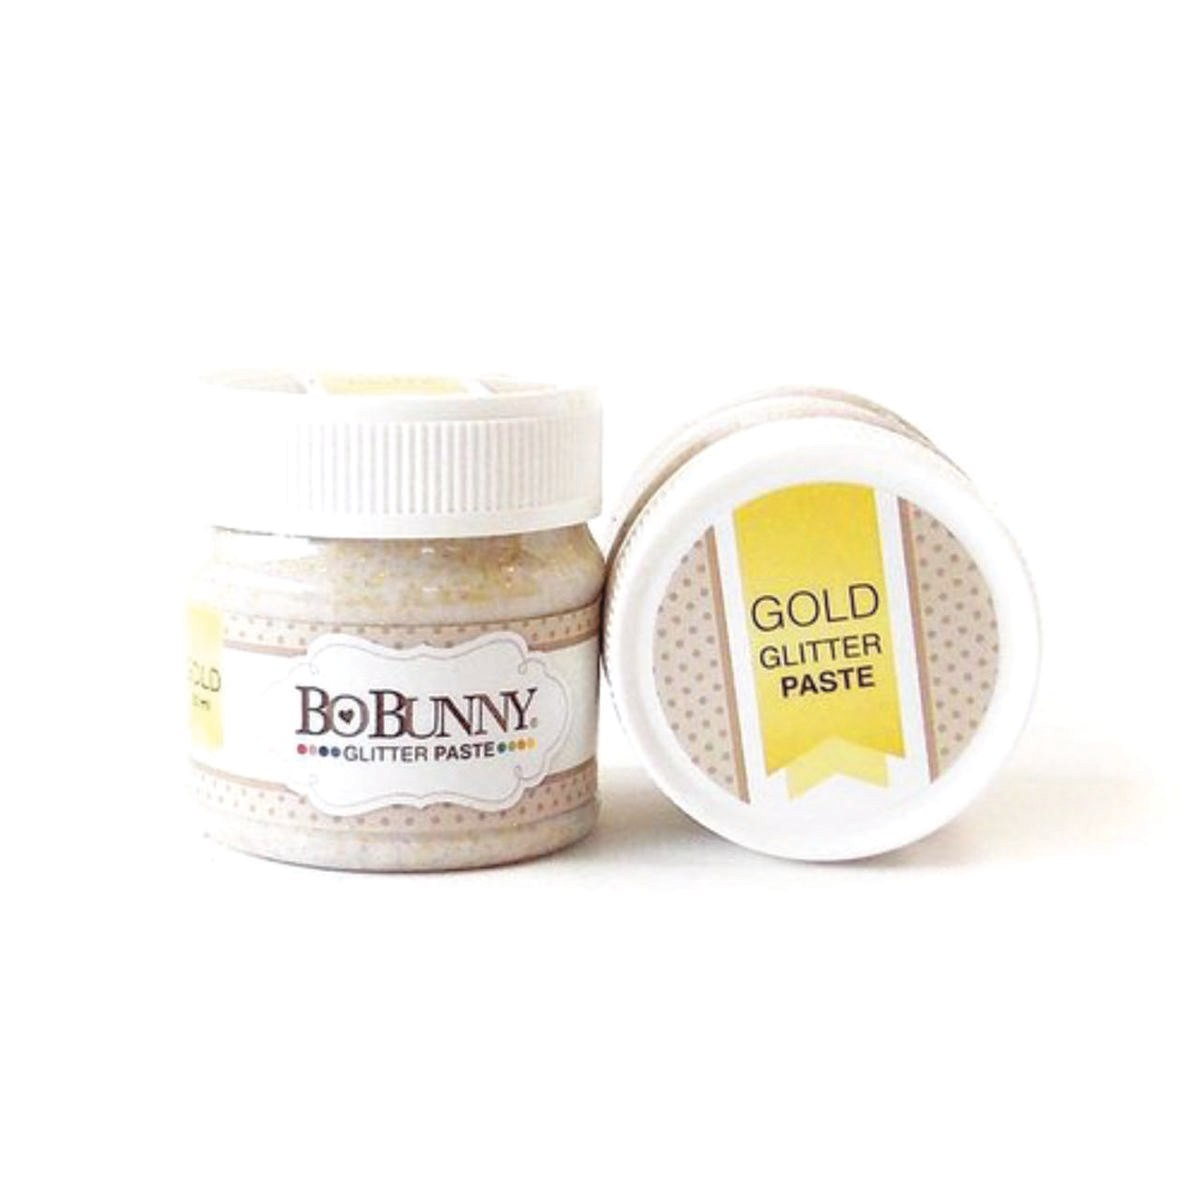 Gold BoBunny Glitter Paste